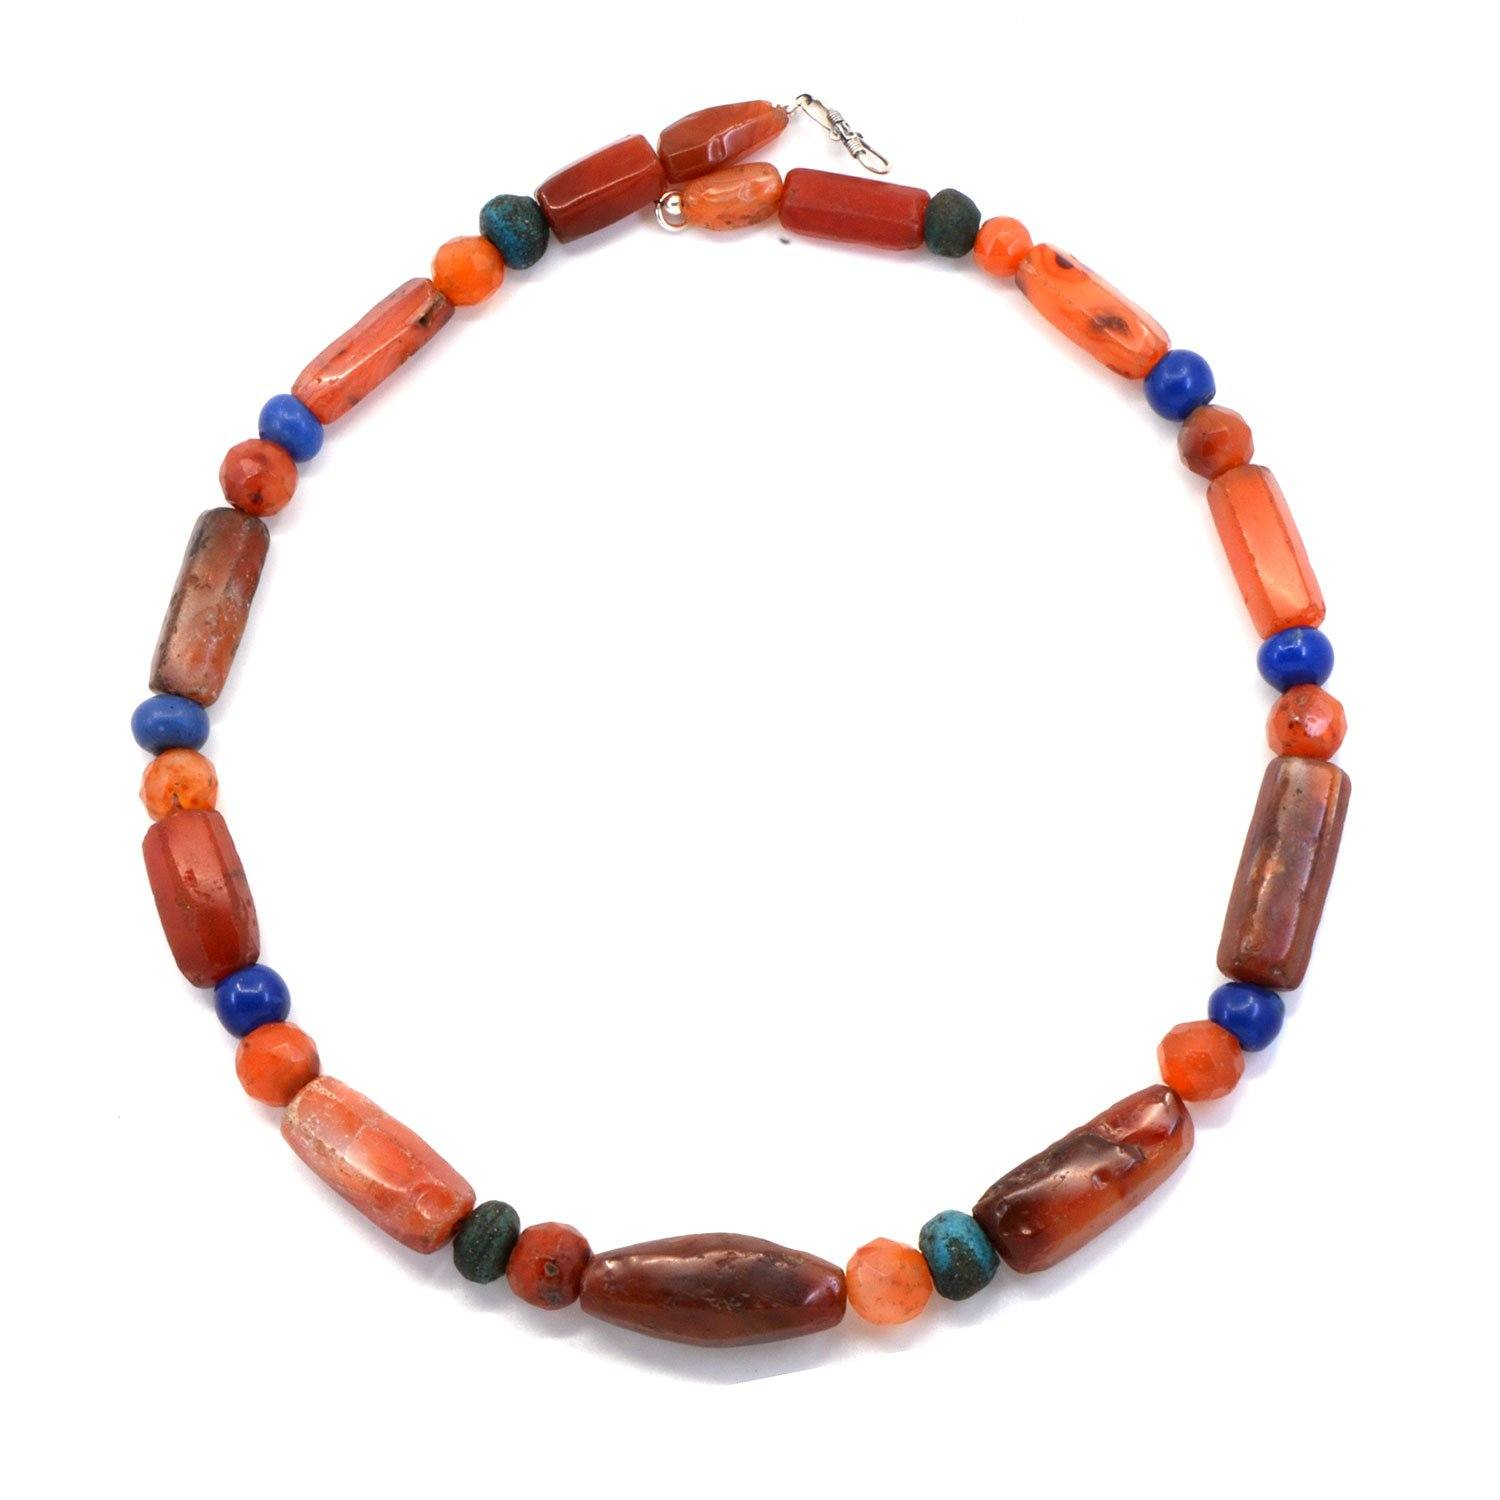 A Roman Carnelian & Glass Bead Necklace, Roman Imperial Period, ca. 3rd - 4th century CE - Sands of Time Ancient Art